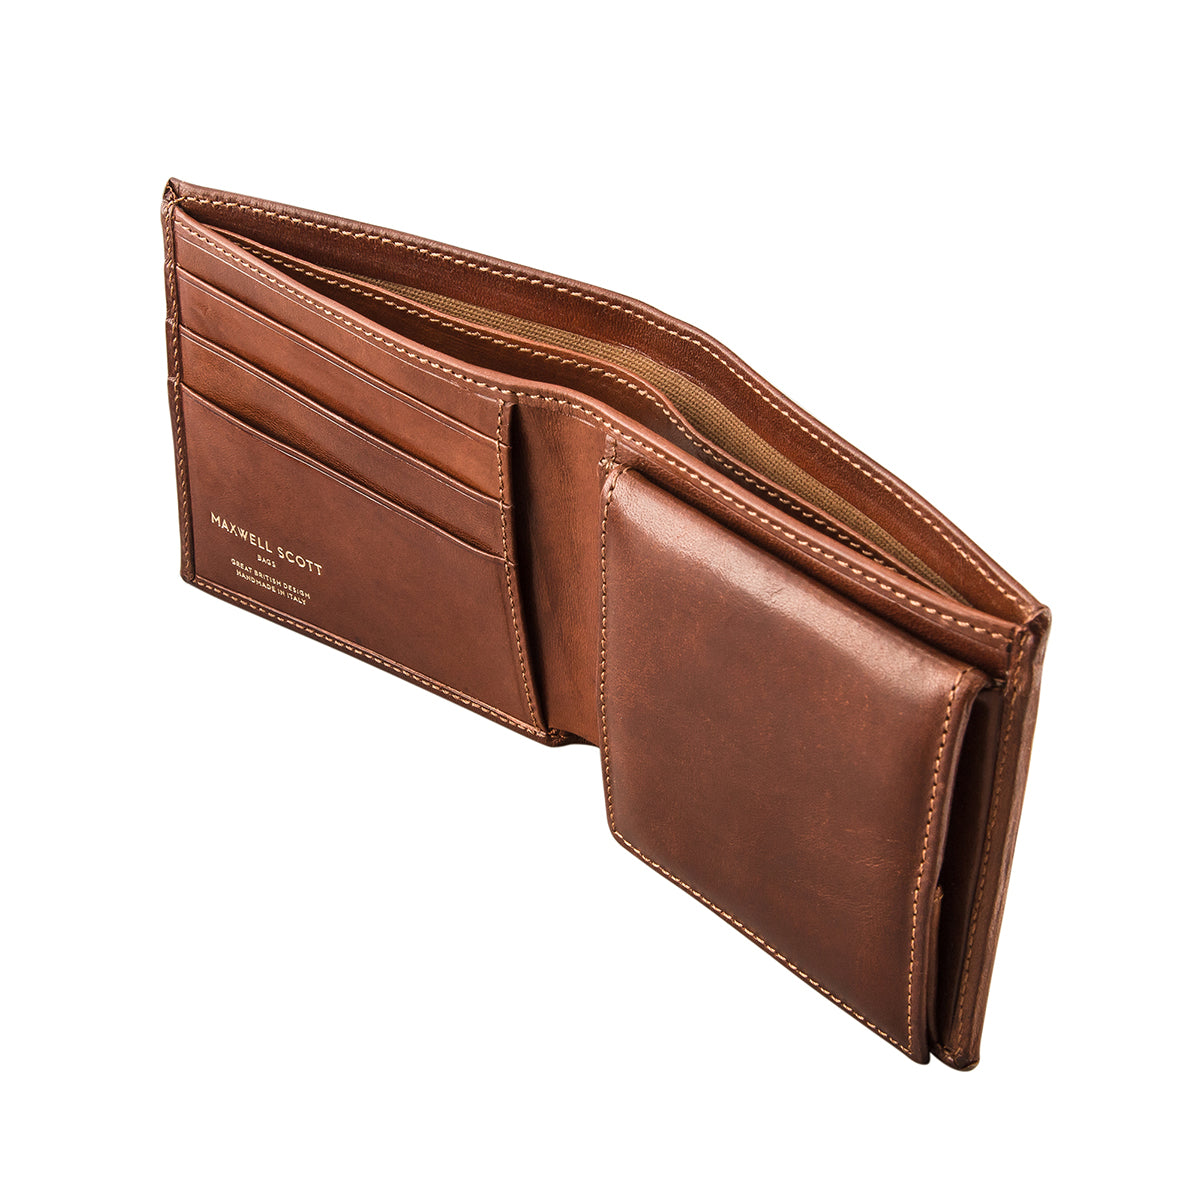 Image 3 of the 'Ticciano' Chestnut Veg-Tanned Leather Wallet with Coin Pocket